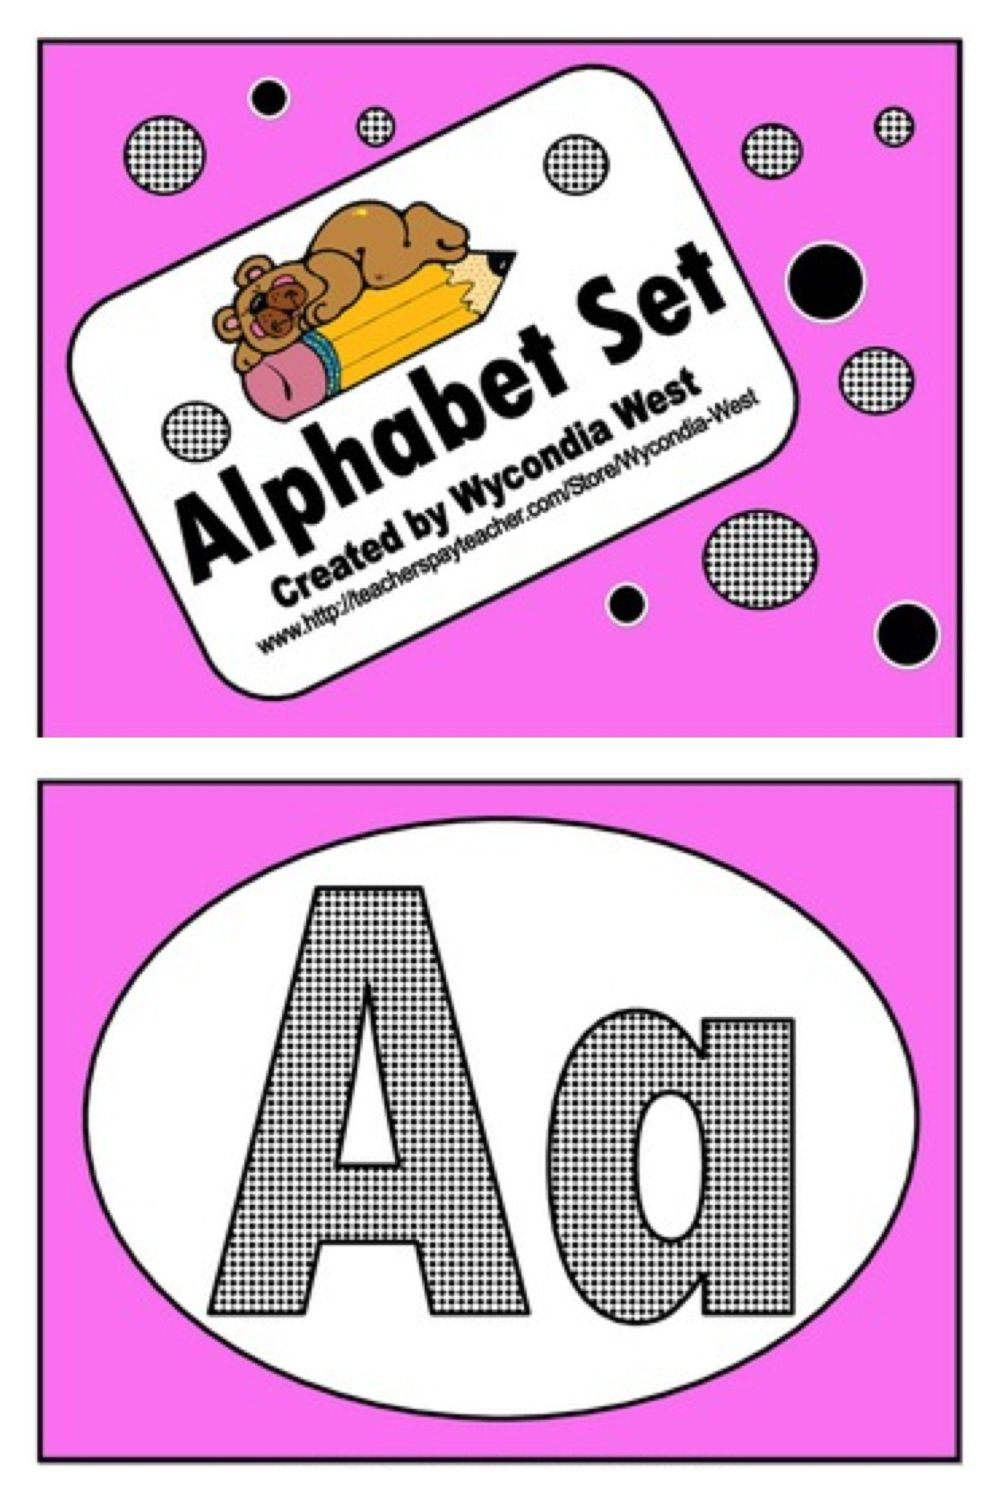 Alphabet set that is great for letter recognition. This is good for ESL beginning readers. This set does not include a picture on the cards.